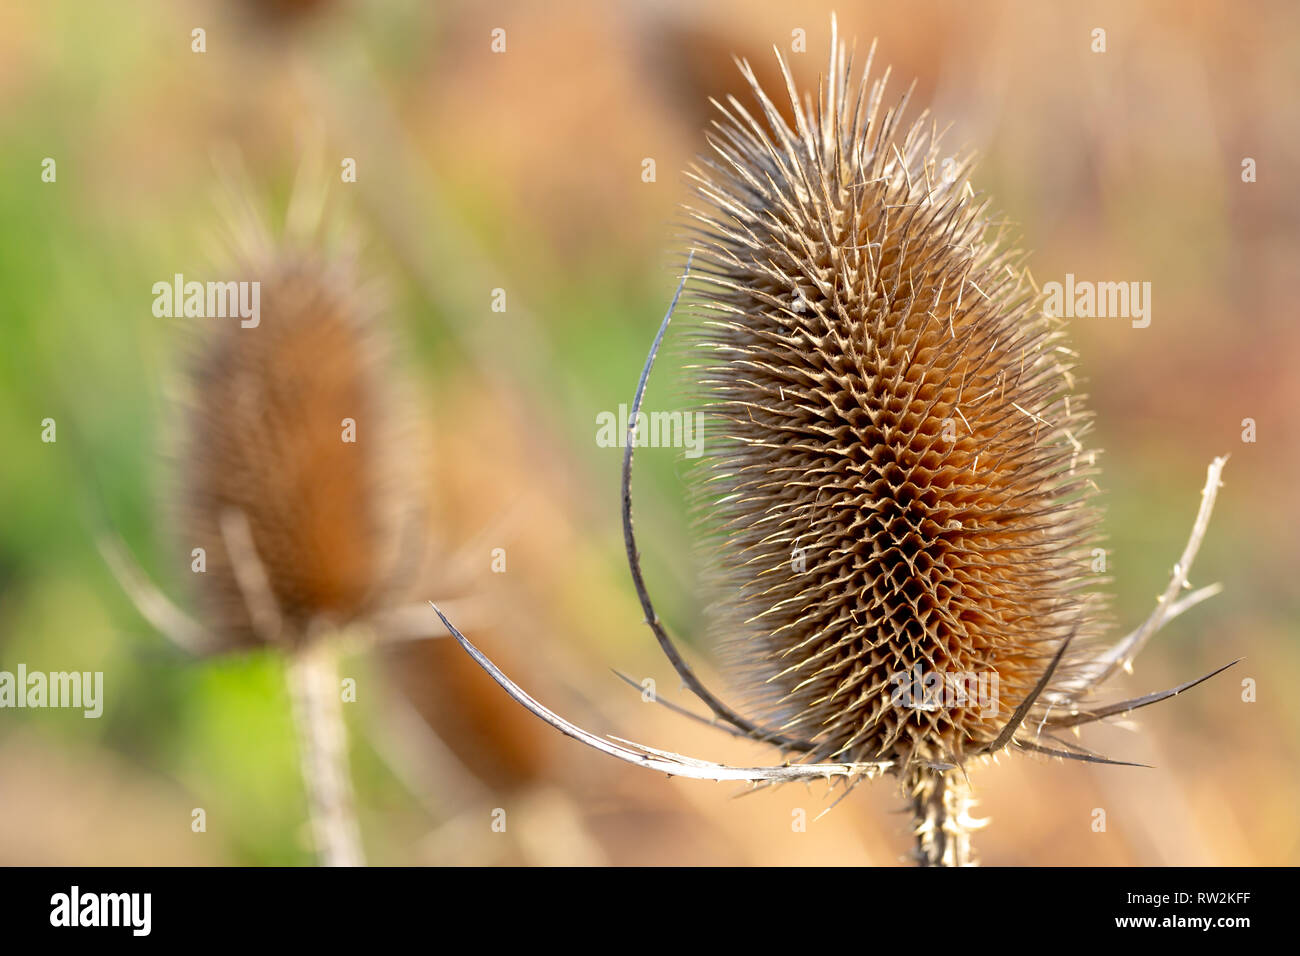 Creative selective focus photograph of a dead Common Teasel head (Dipsacus fullonum), shot off-centre with another head blurred in background. - Stock Image